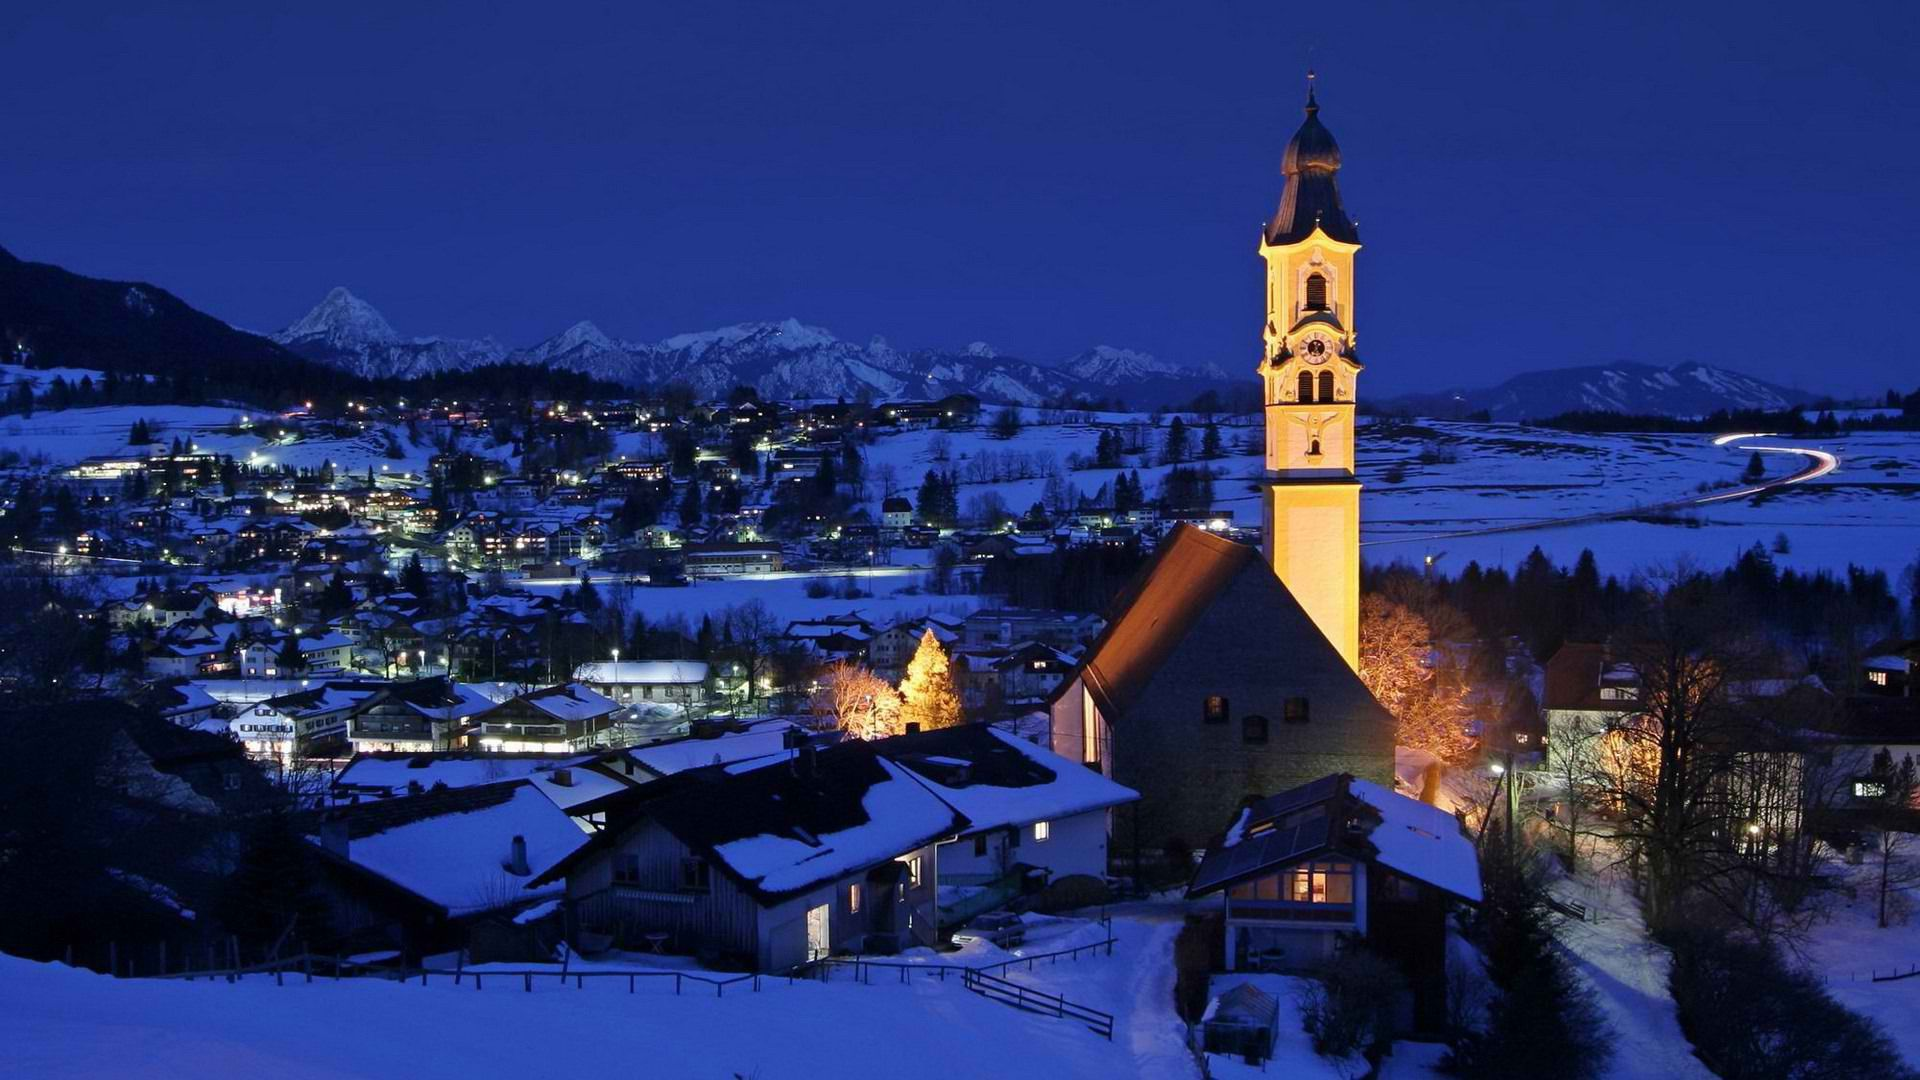 christmas in the alps Village in the Alps Germany wallpaper 1920x1080